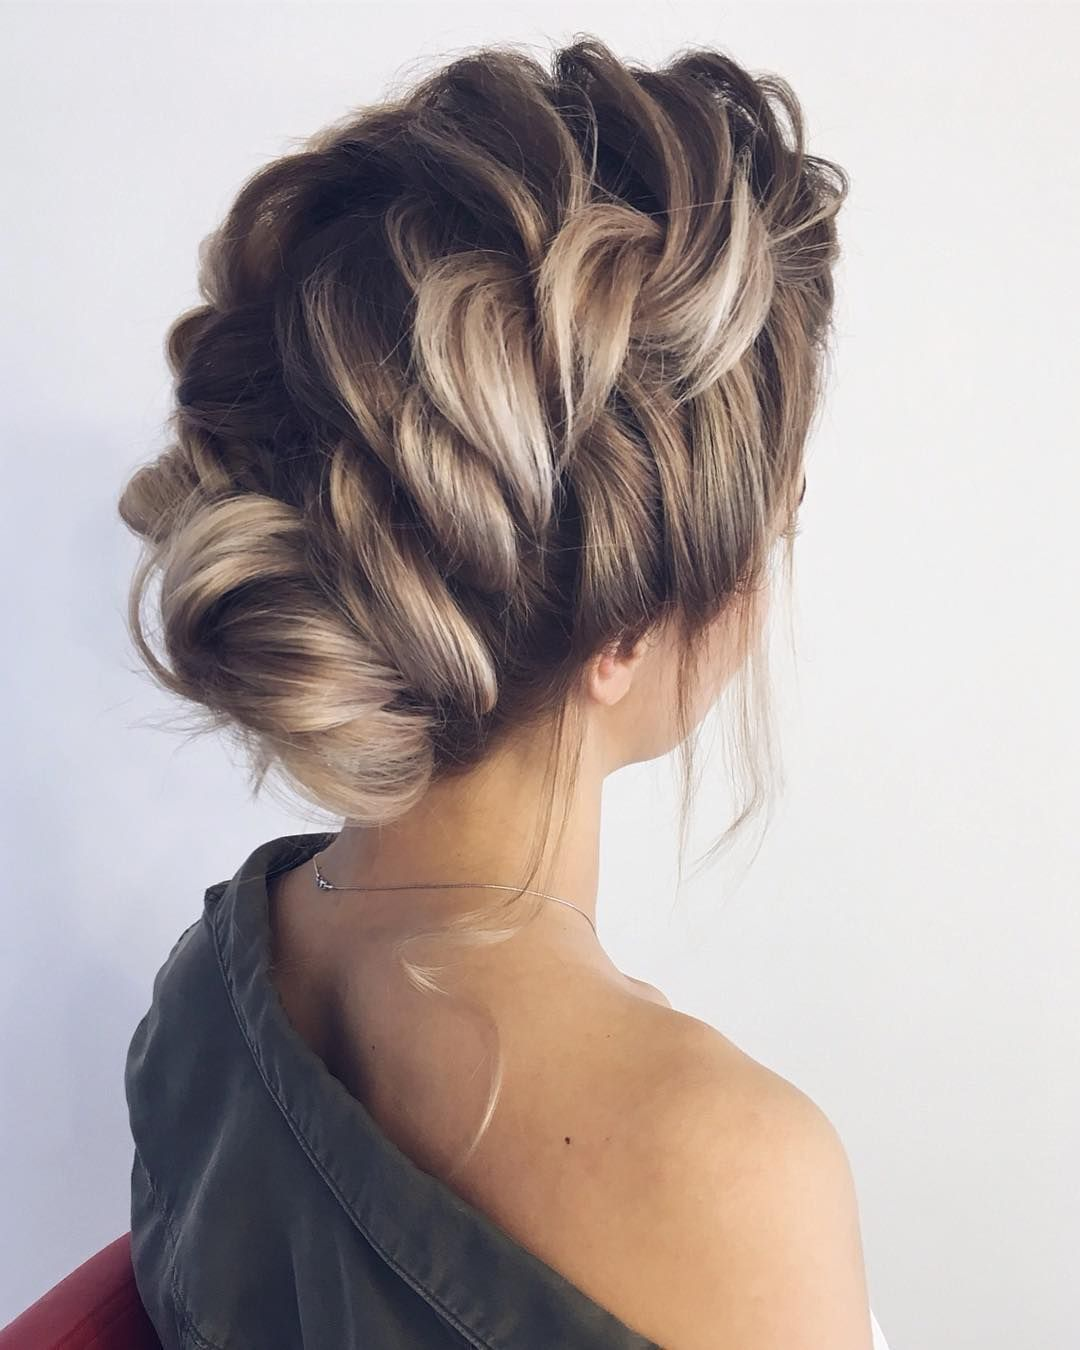 Pinterest Andrea Djordjevic Braided Hairstyles Updo Long Hair Styles Braided Hairstyles For Wedding